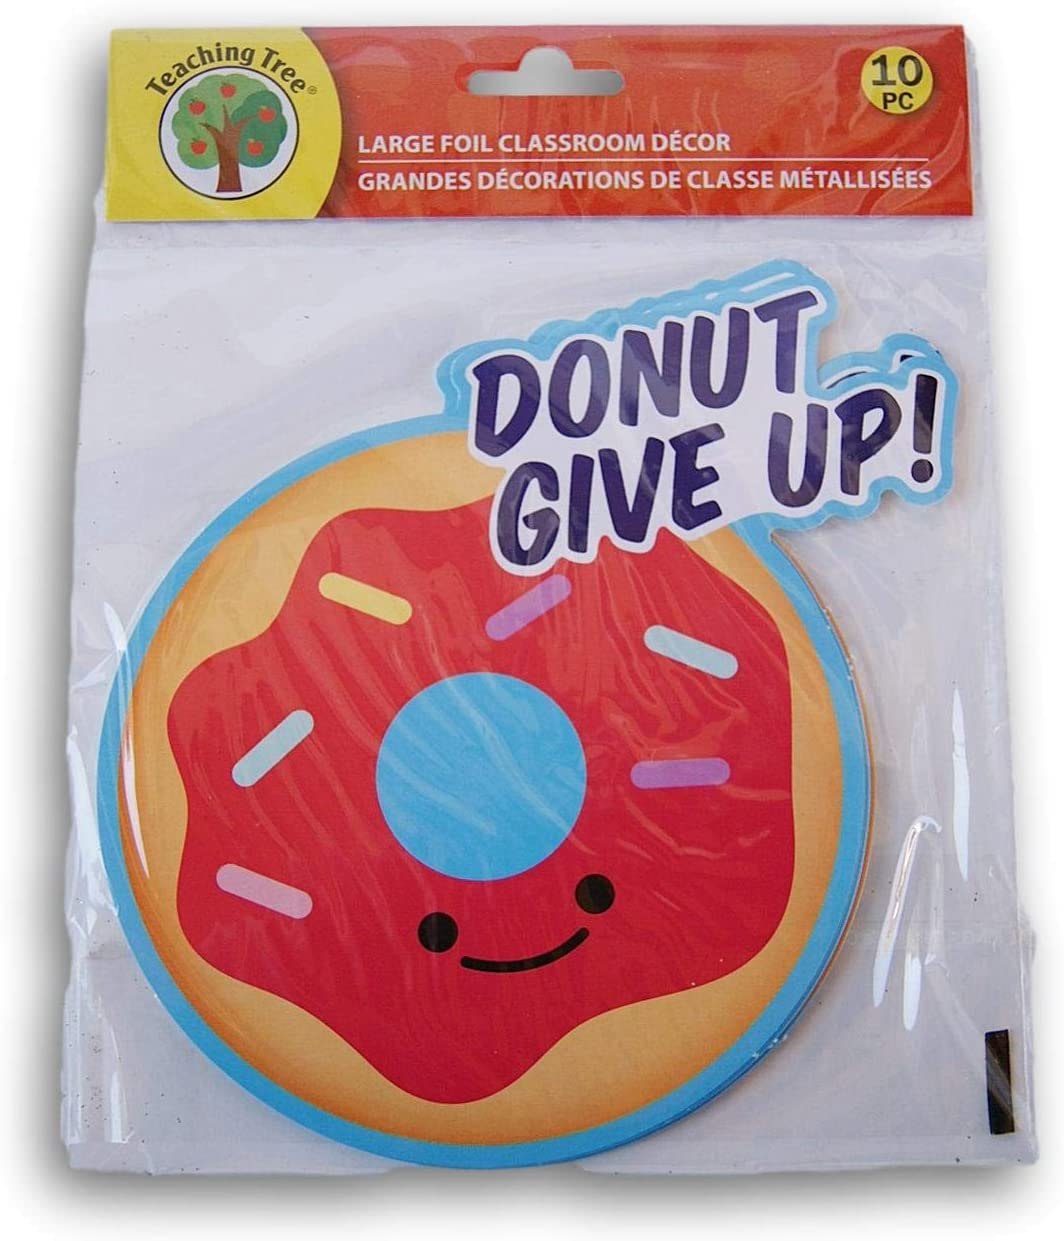 Donut Give Up! Classroom Decor Foil Paper Cut-Outs - 10 Count